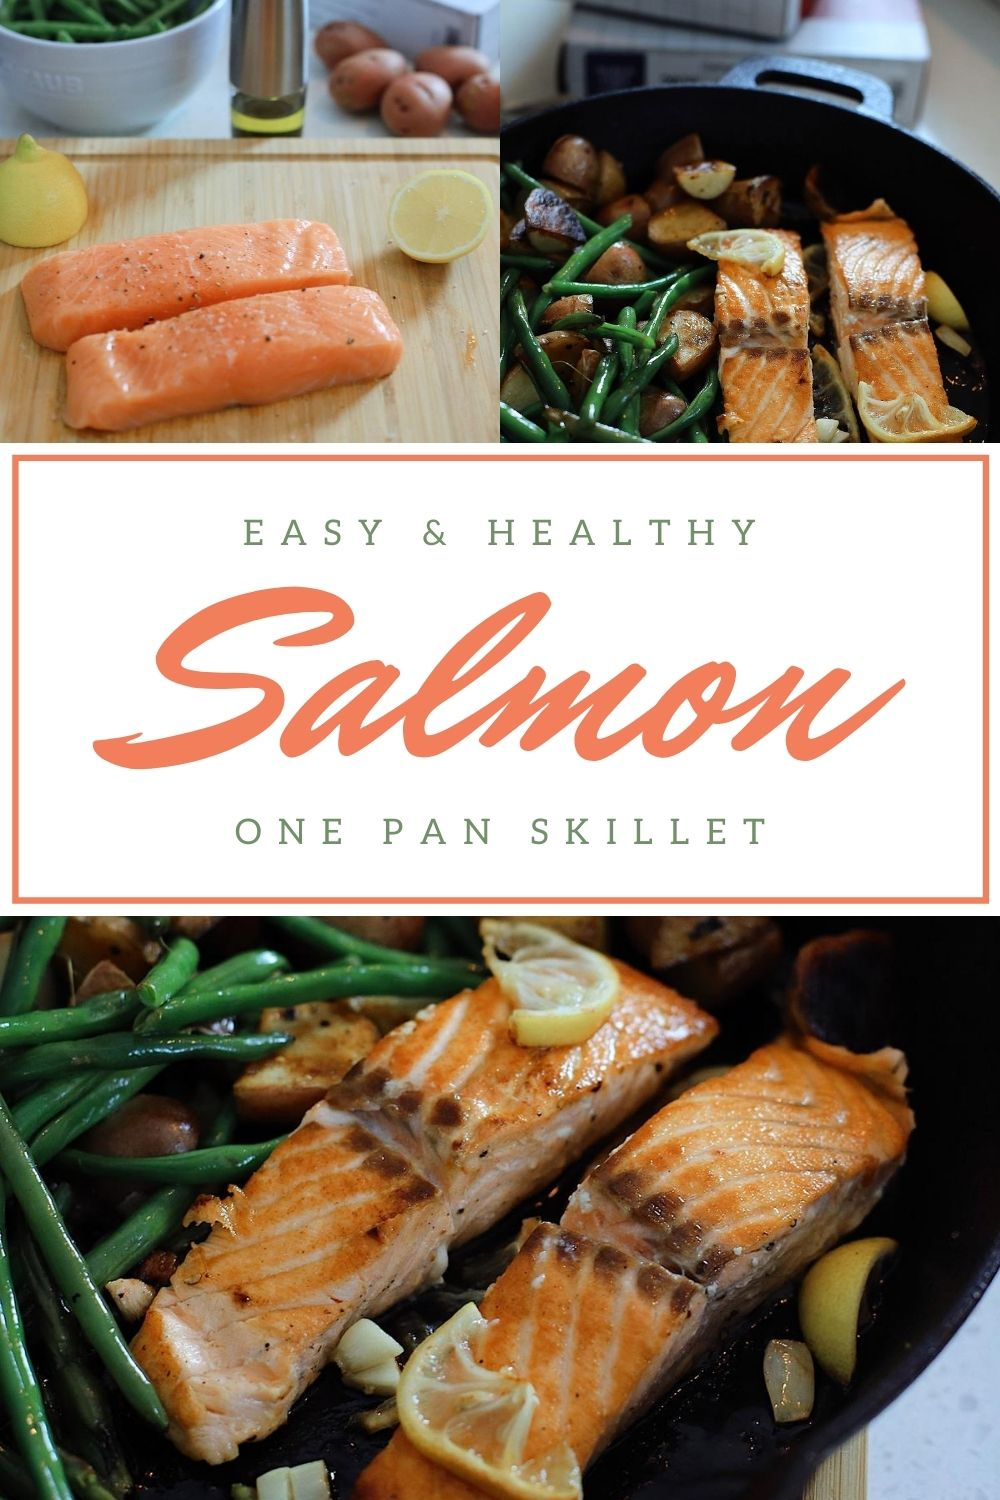 One Pan Salmon Skillet with Garlic Lemon Butter | Salmon Skillet by possible Florida lifestyle blog, Fresh Mommy Blog: Pinterest image of salmon, green beans, and potatoes in a skillet.